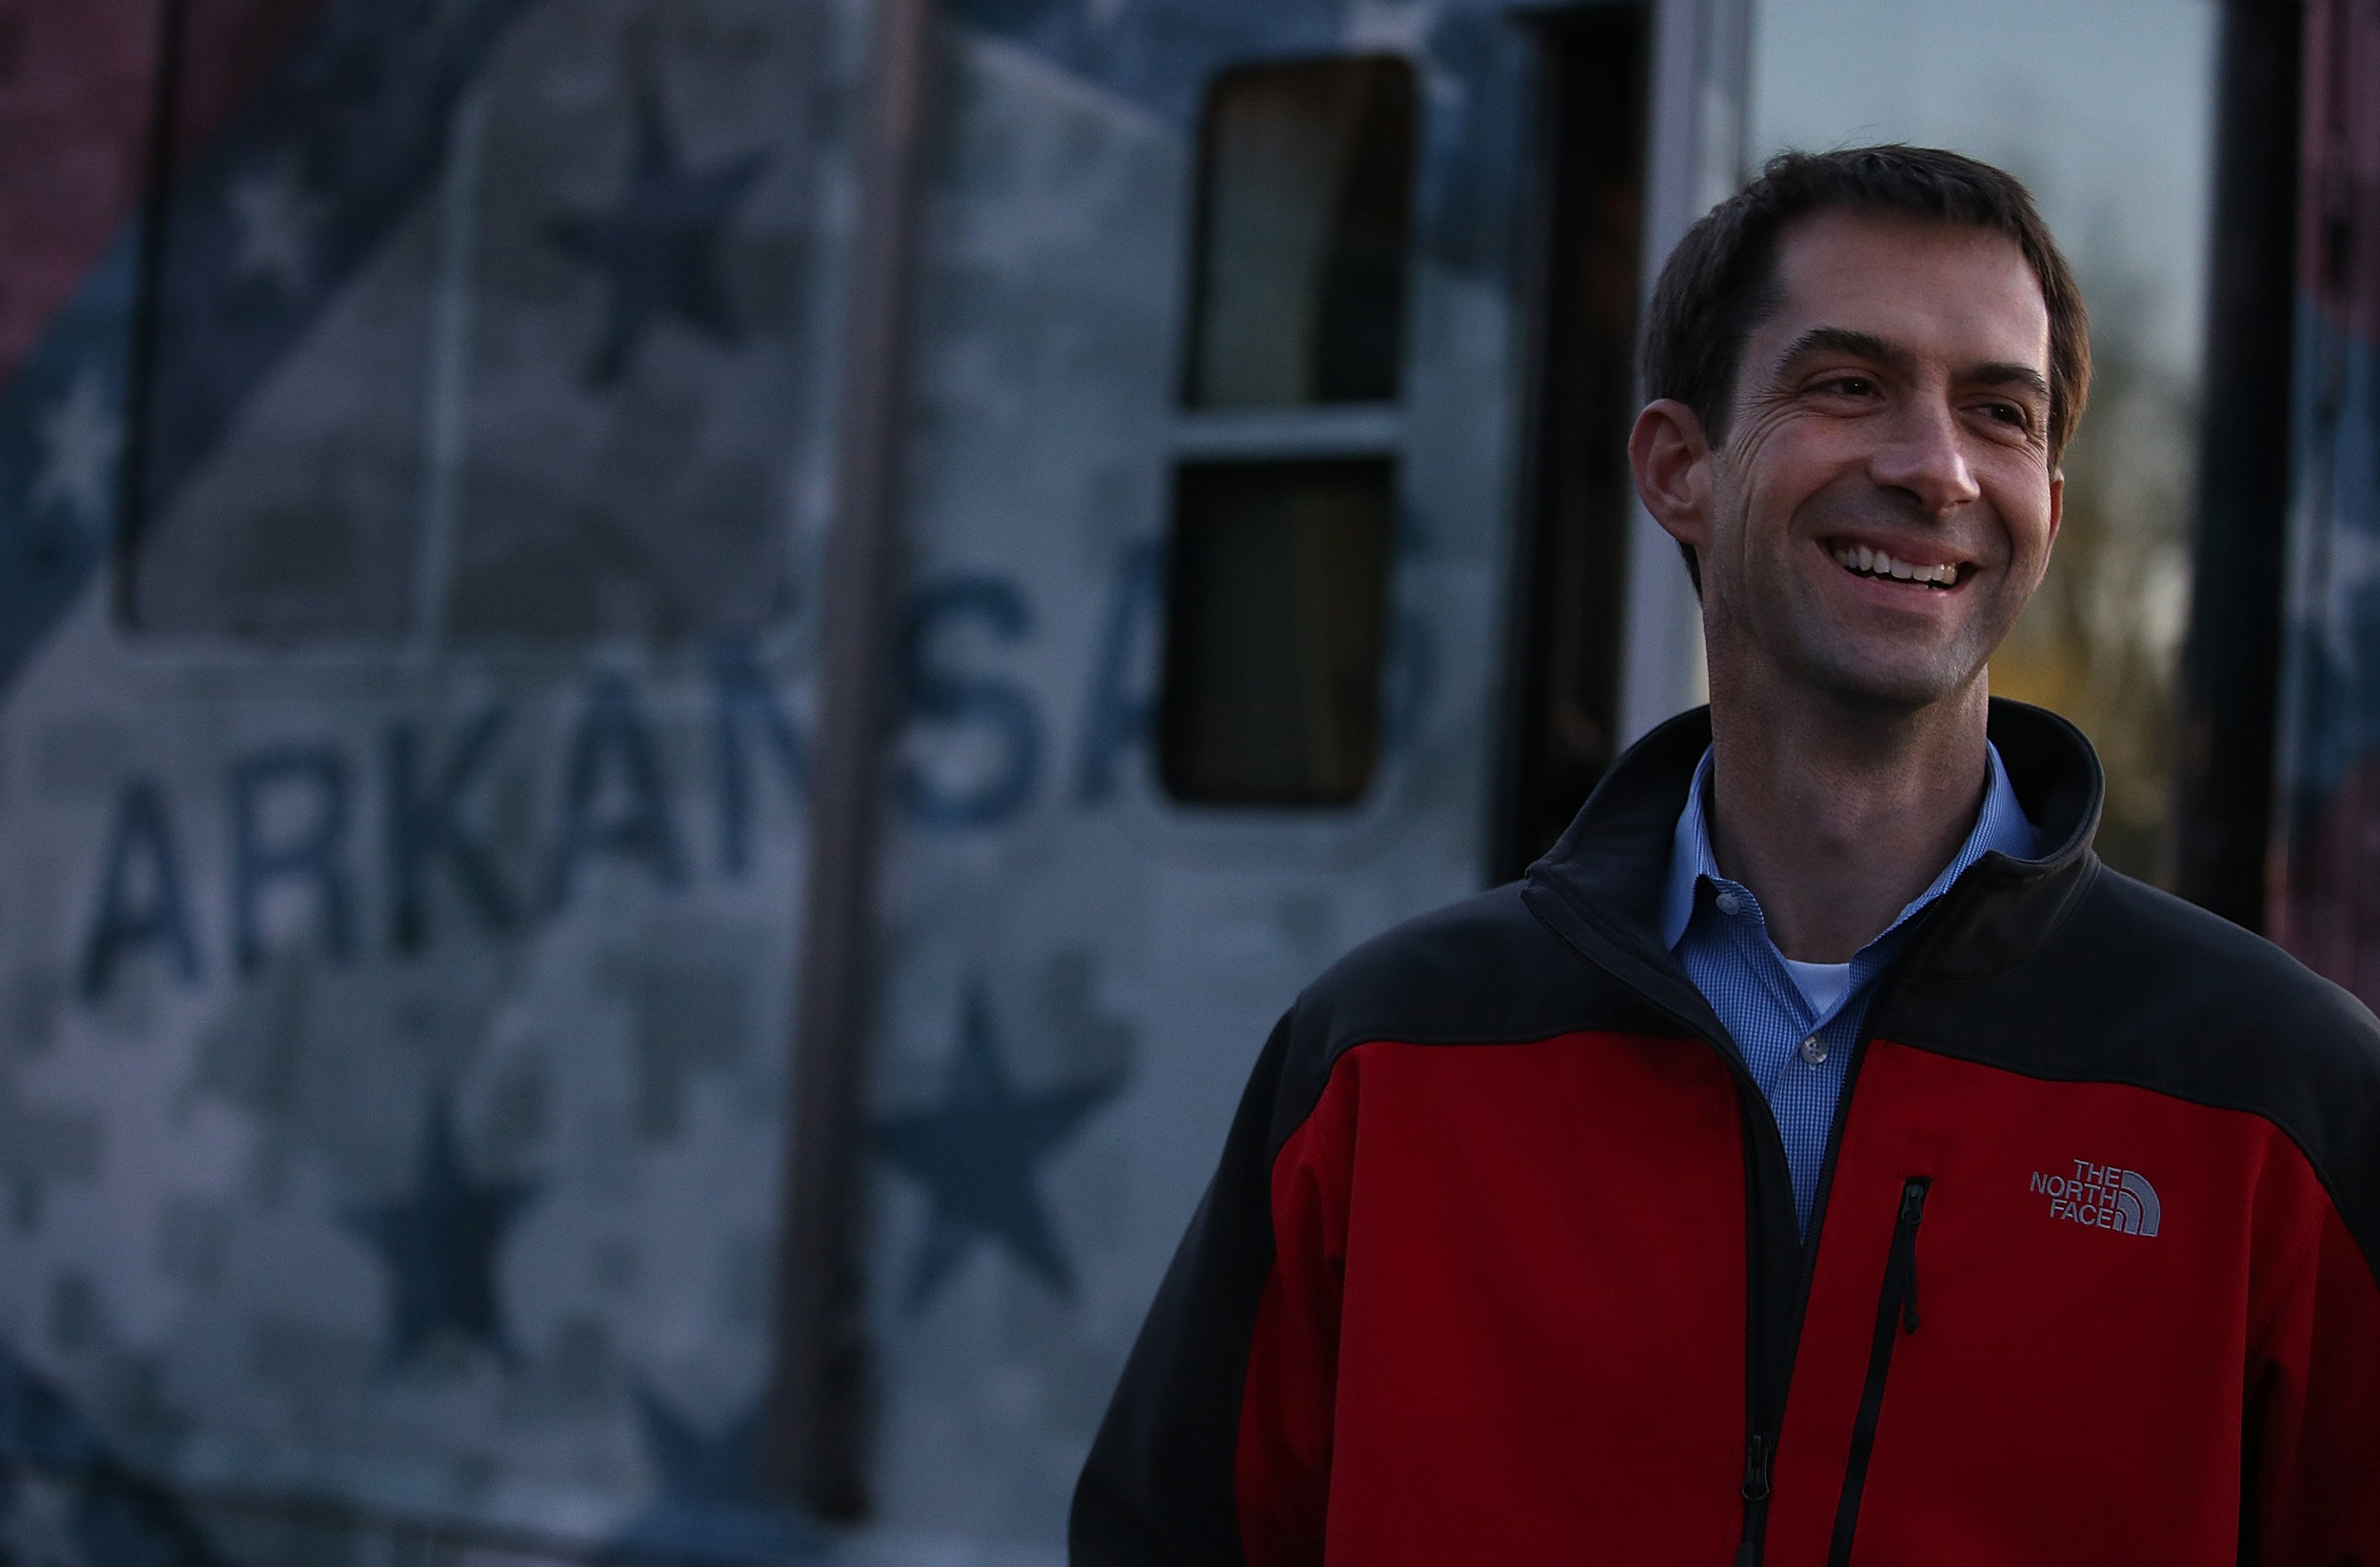 <b>Tom Cotton</b>A U.S. Army Veteran and lawyer, Cotton has served as Representative for Arkansas's 4th district since 2012 and now moves on to the Senate.